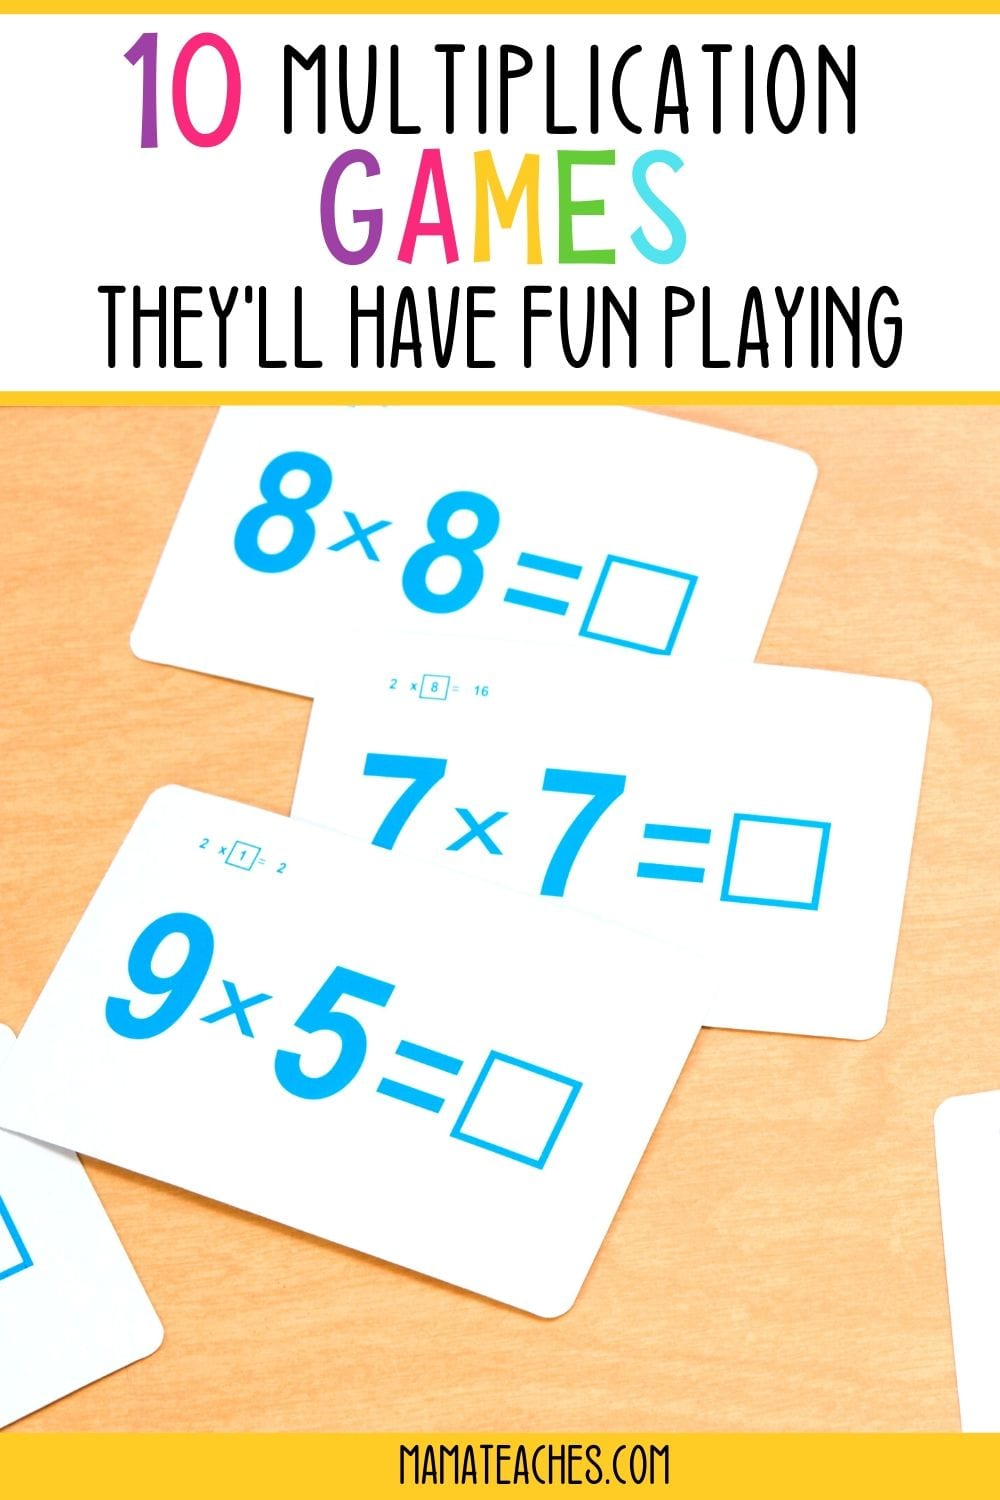 10 Multiplication Games They'll Have Fun Playing